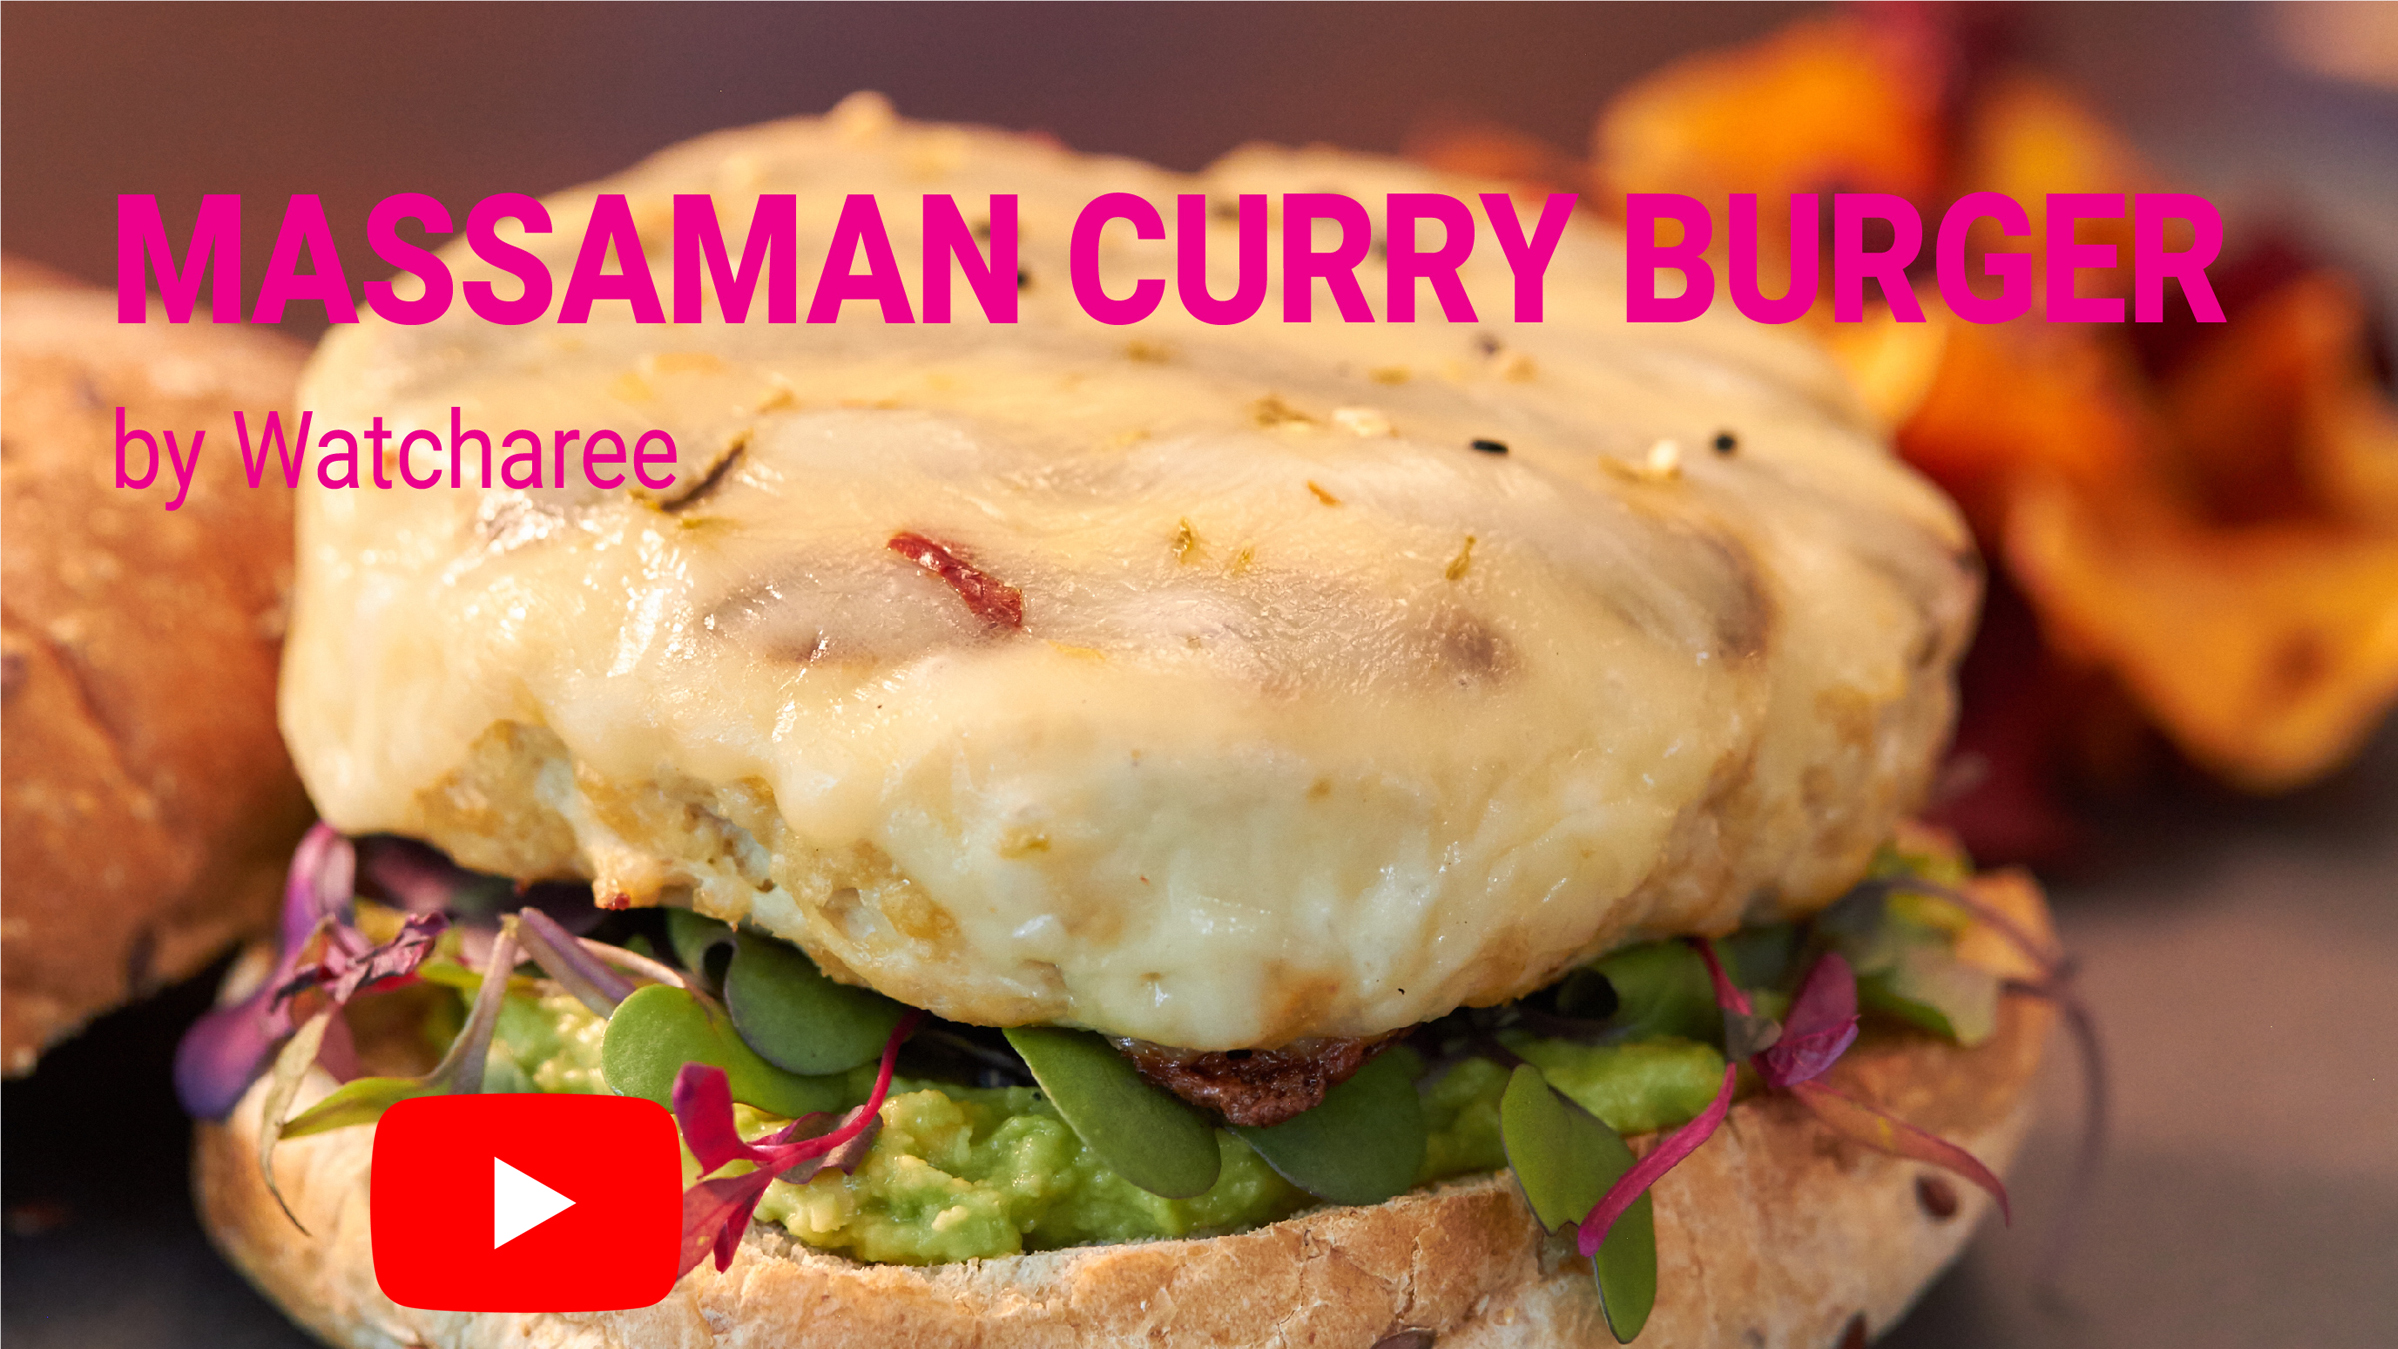 Thai Massaman Curry Turkey Burger